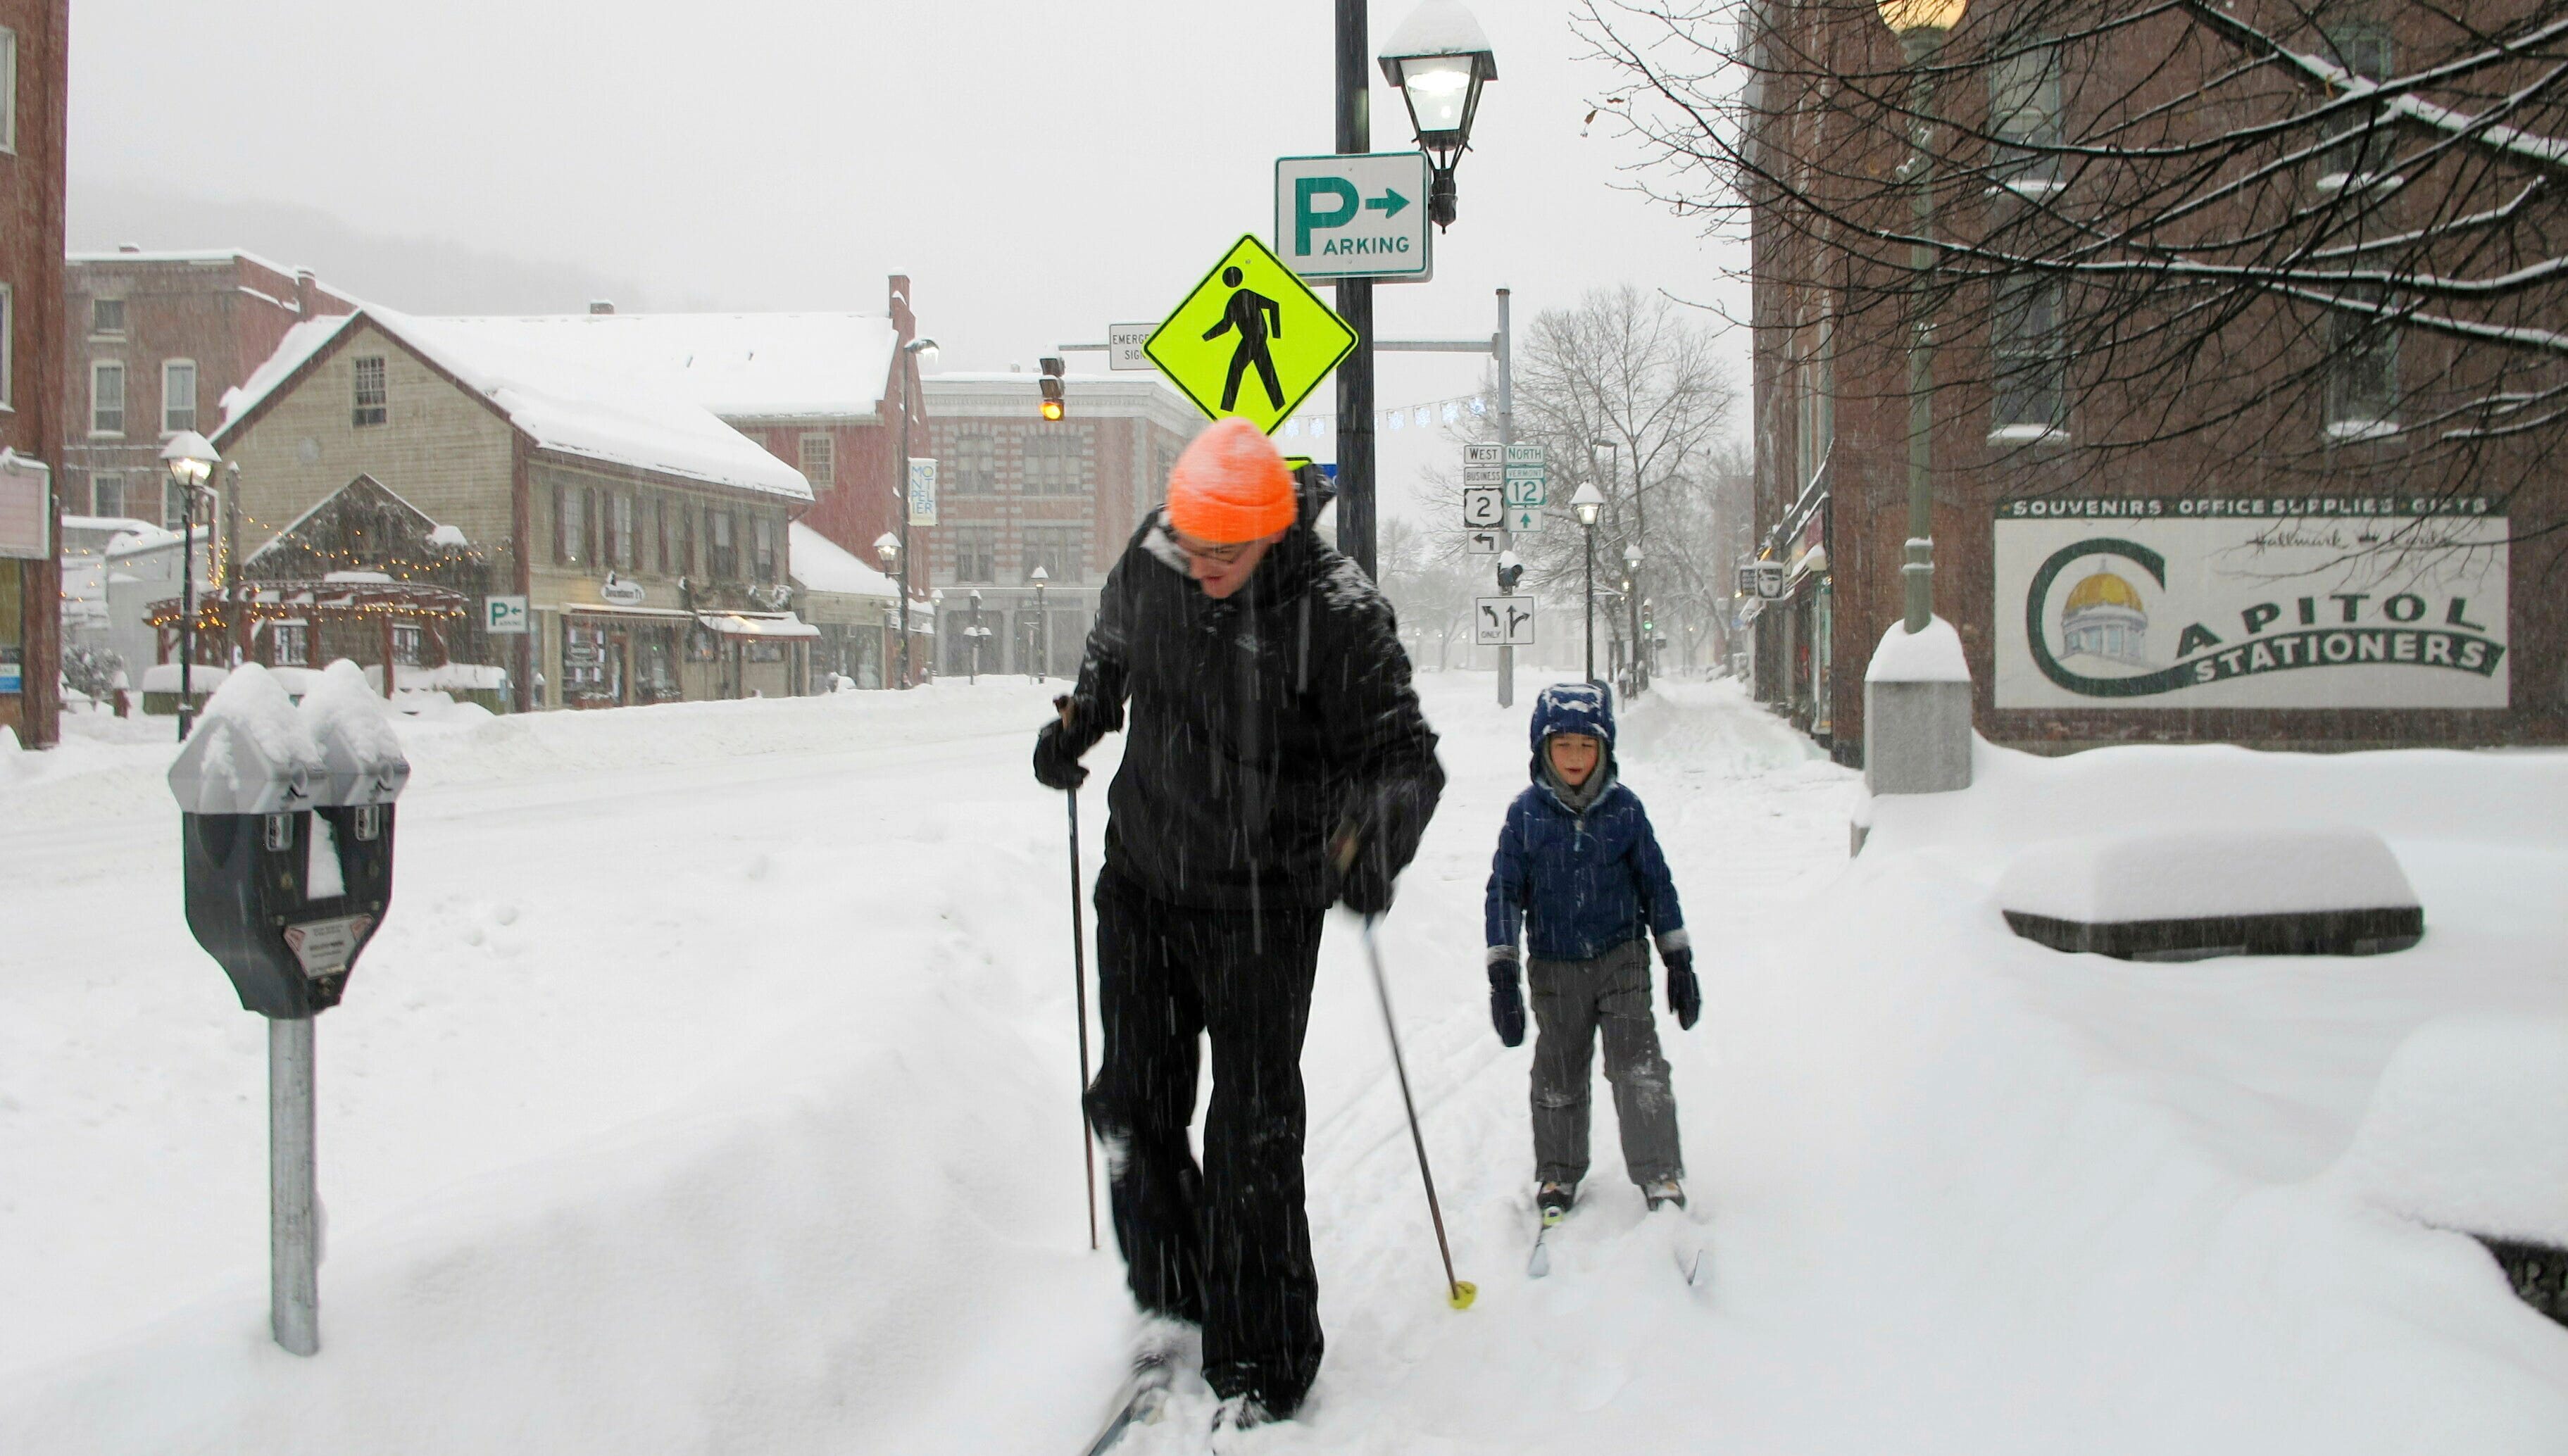 Nicholas Nicolet and his son Rocco cross-country ski on Sunday, Jan. 20, 2019, in Montpelier, Vt.